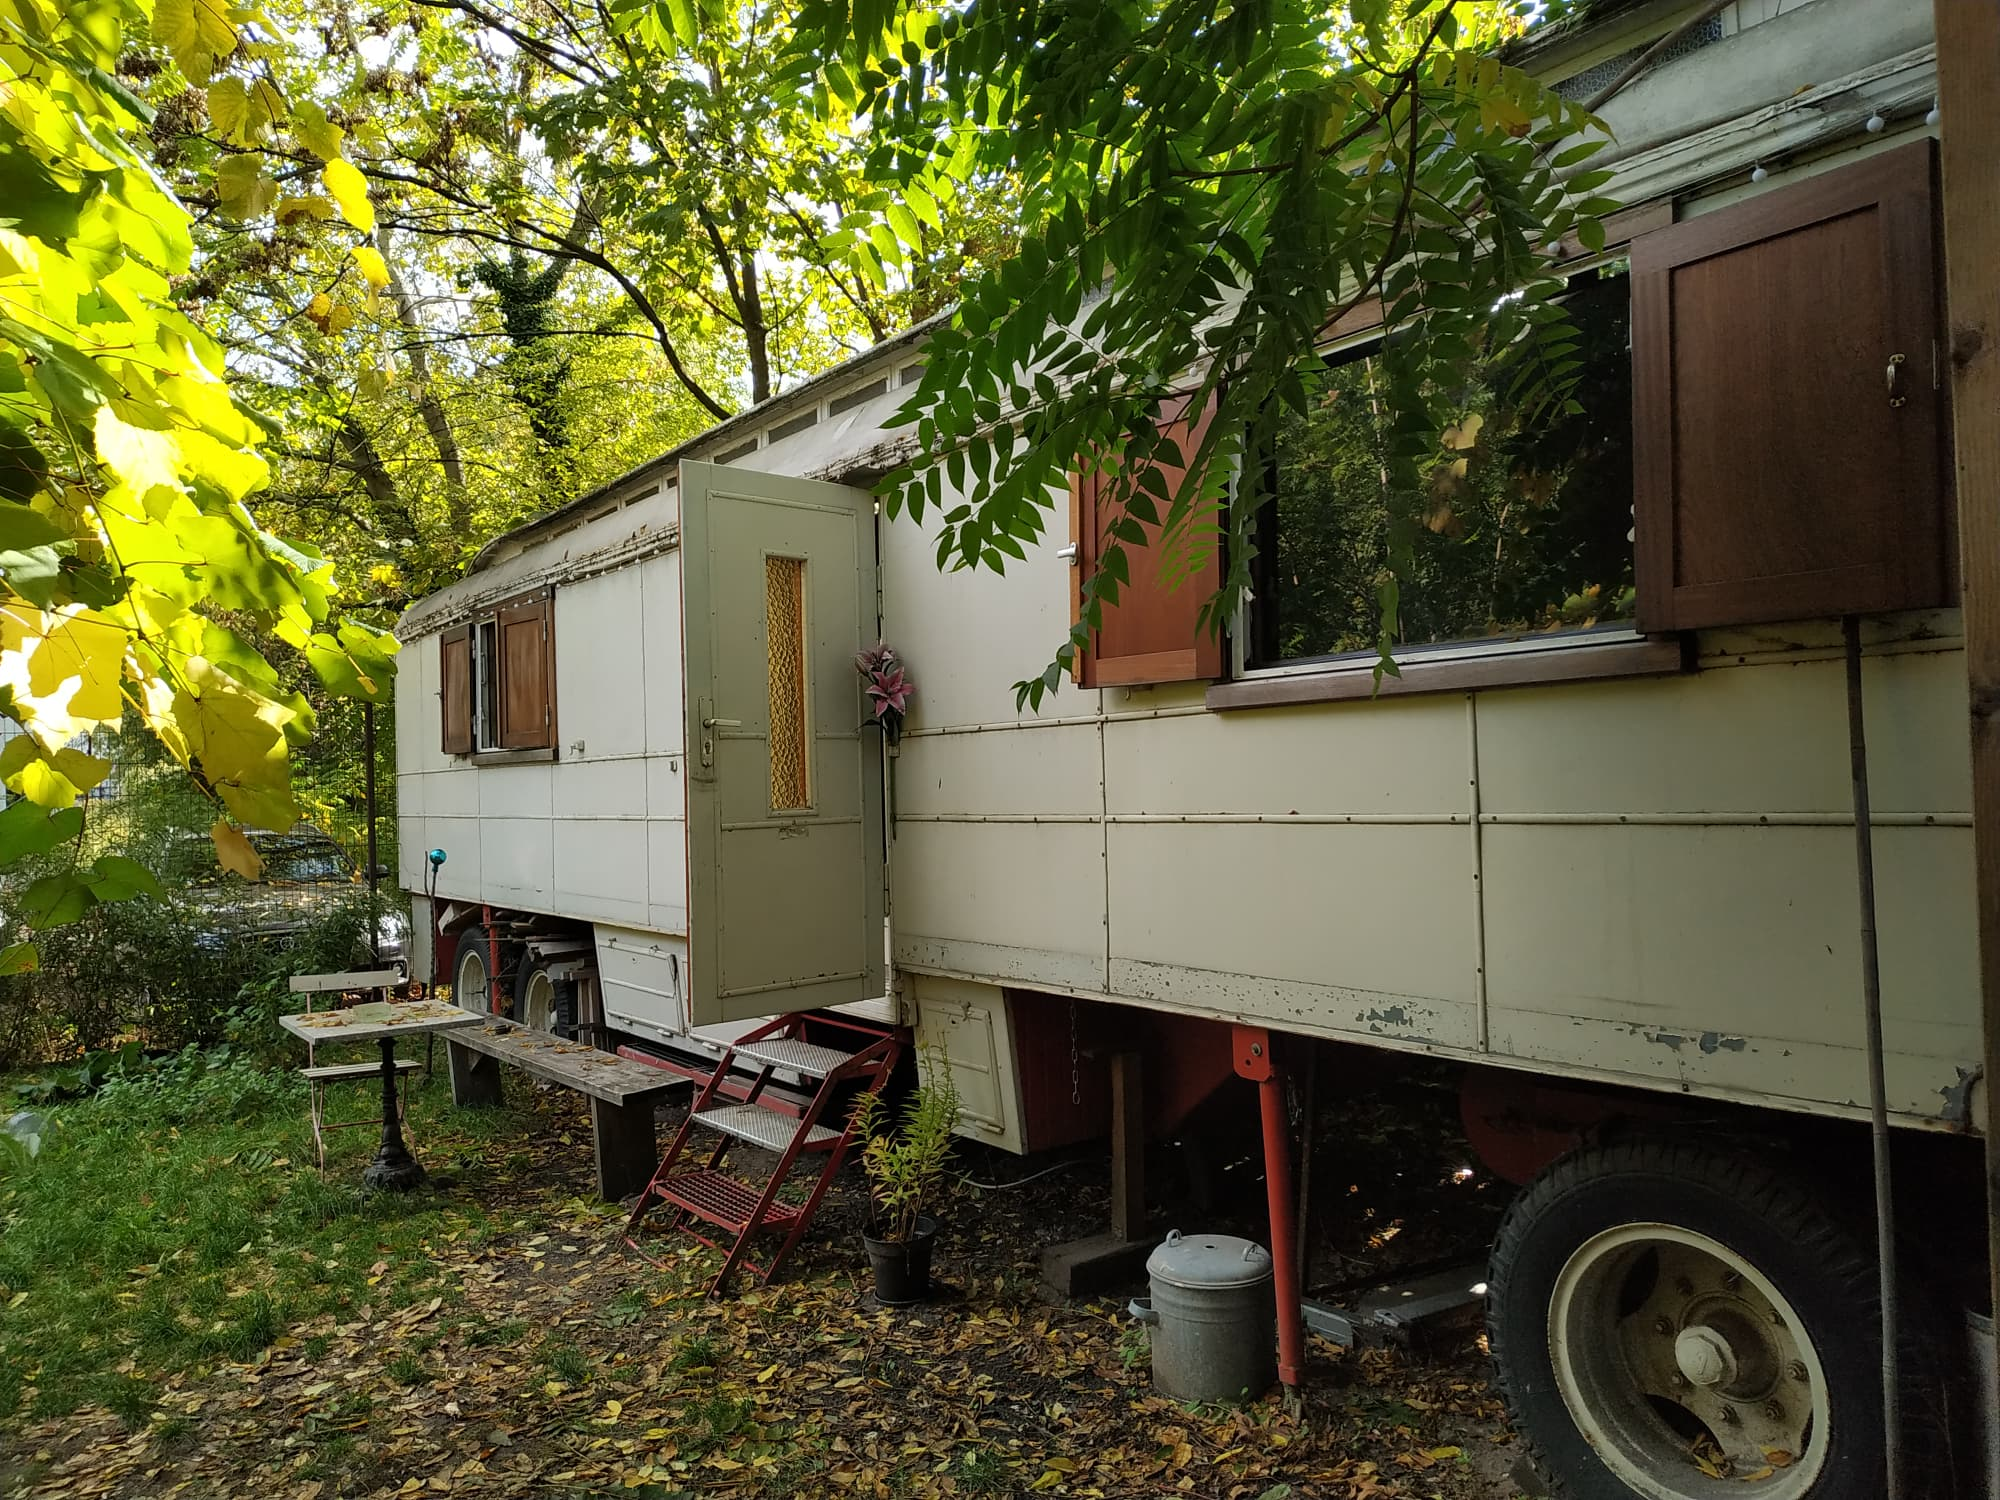 We found a caravan AirBNB near the nightlife in Berlin Germany